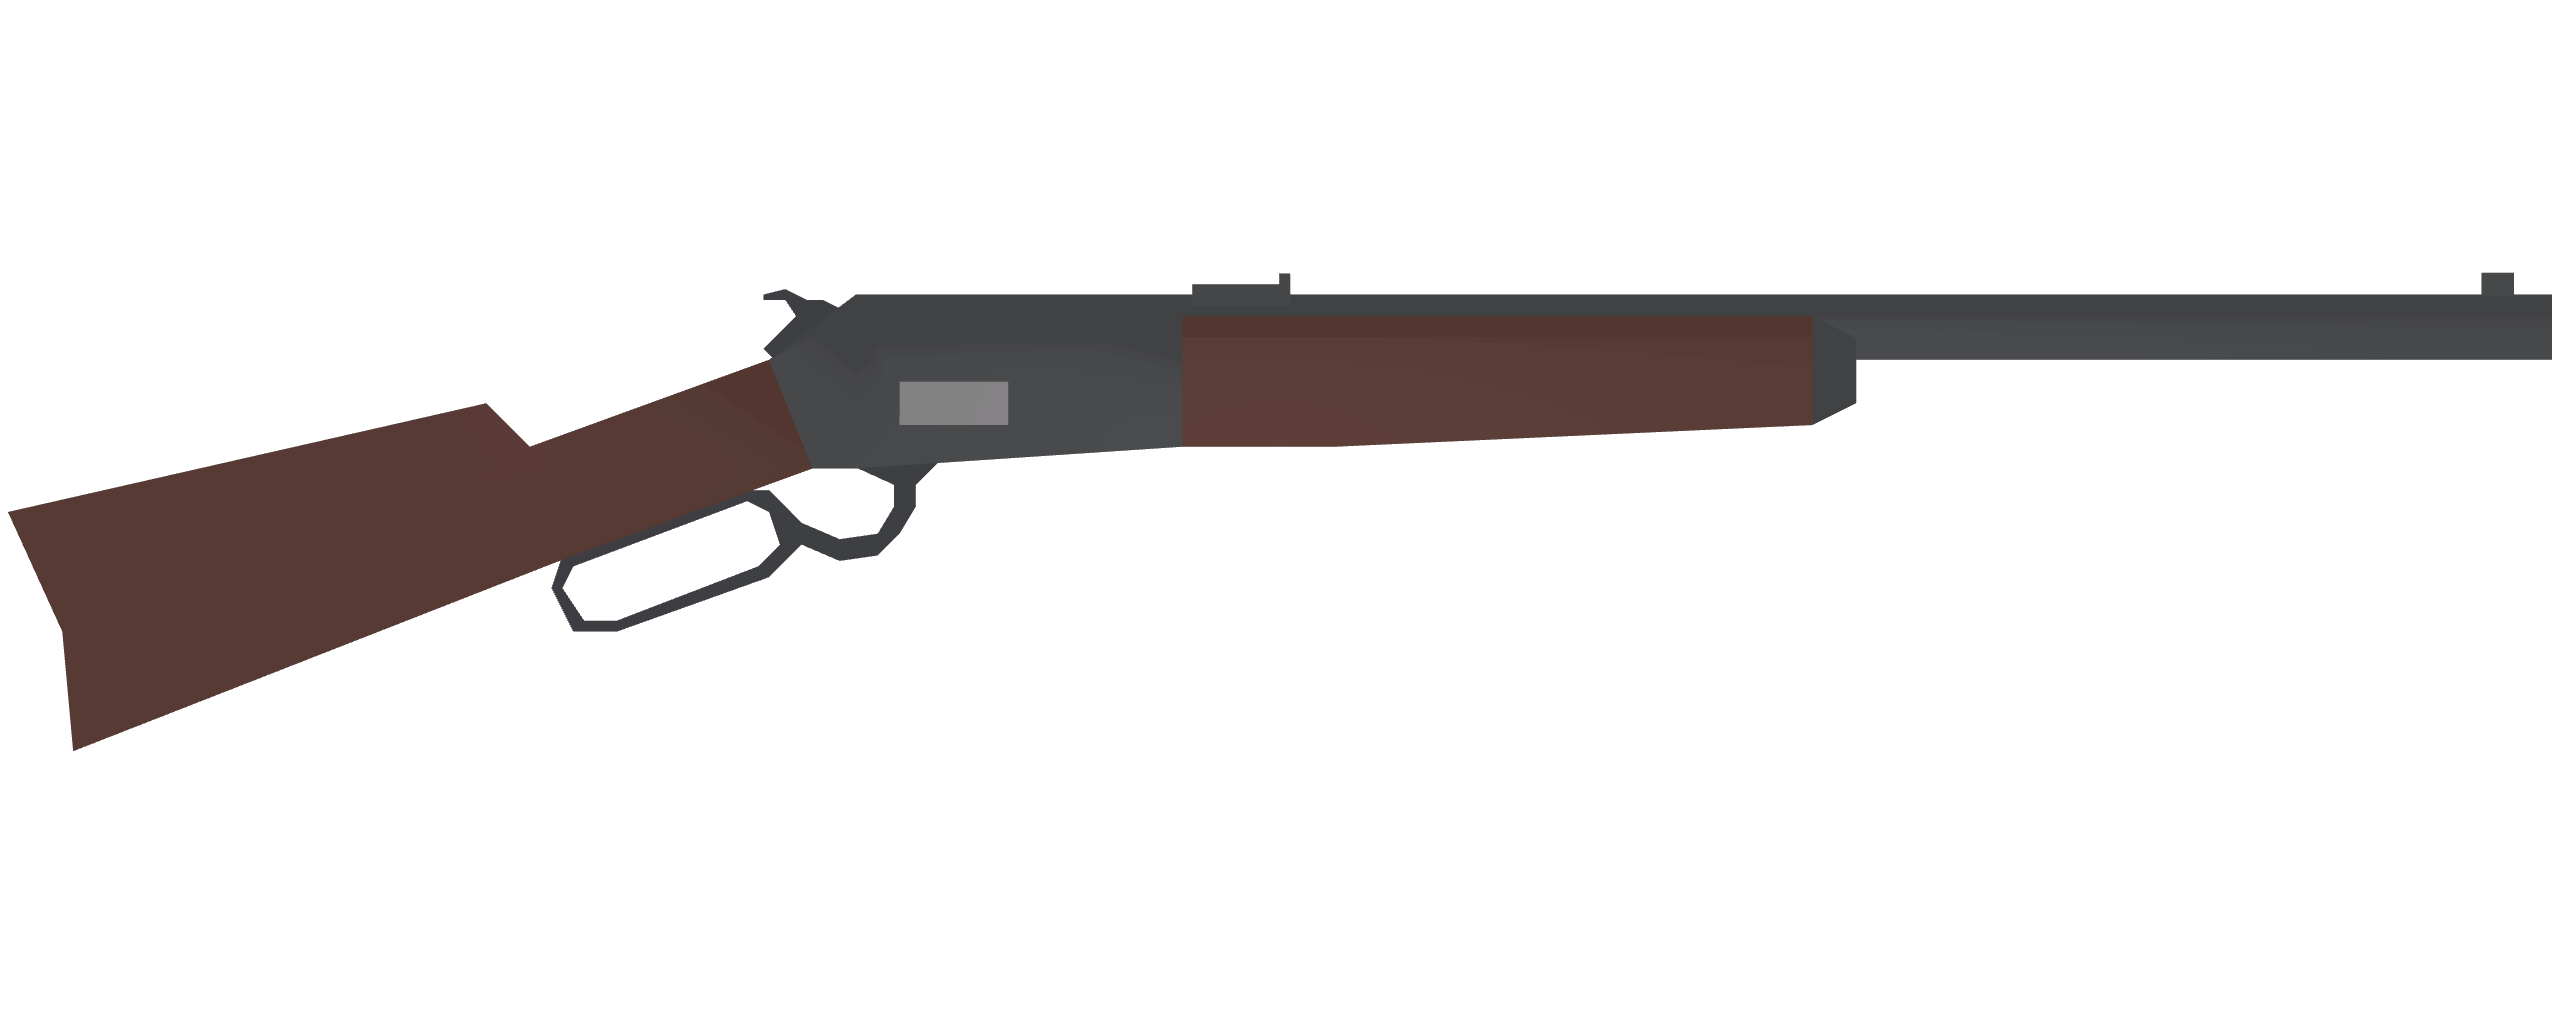 Unturned Uncreated Warfare Mods & All ID List + Attachments - Neutral Weapons - DF1177E